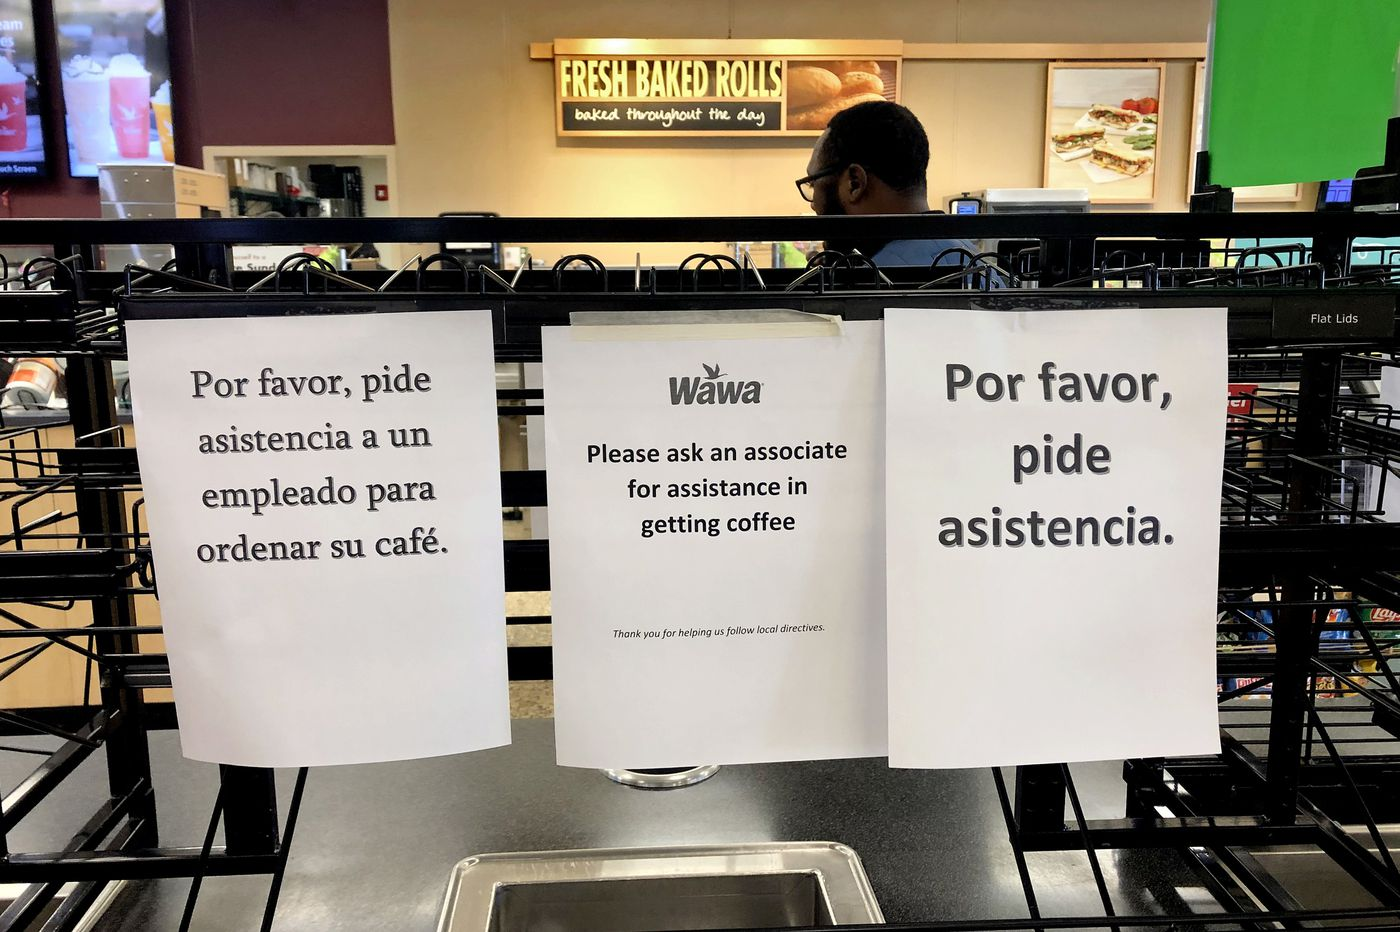 Wawa reinstates self-serve coffee at several stores, including in South Jersey, amid coronavirus pandemic